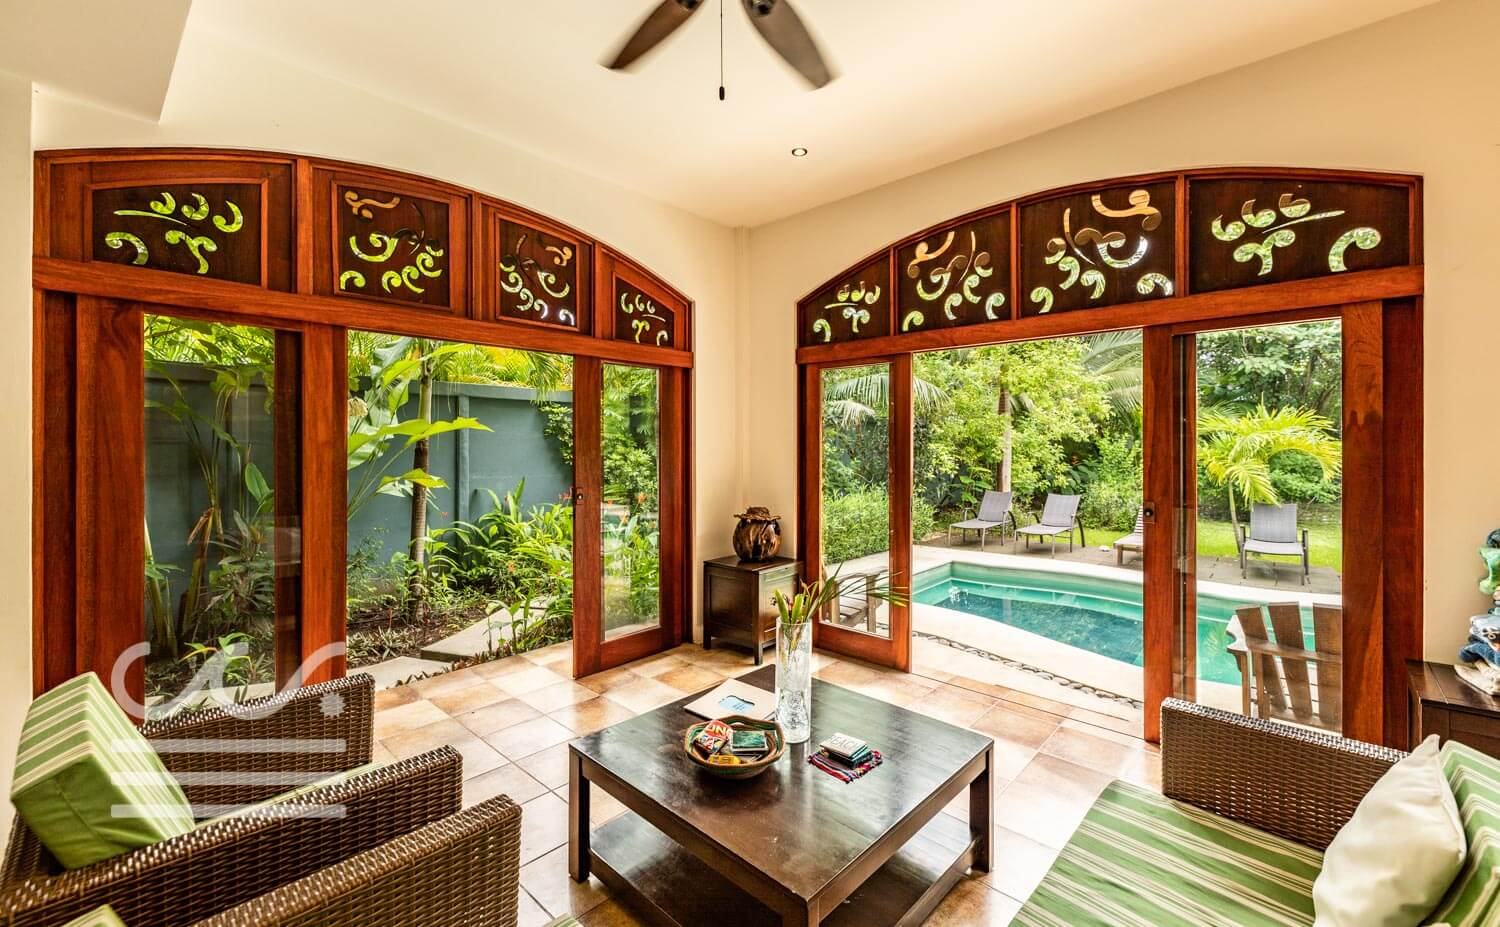 Endless-Summer-Wanderlust-Realty-Real-Estate-Rentals-Nosara-Costa-Rica-12.jpg